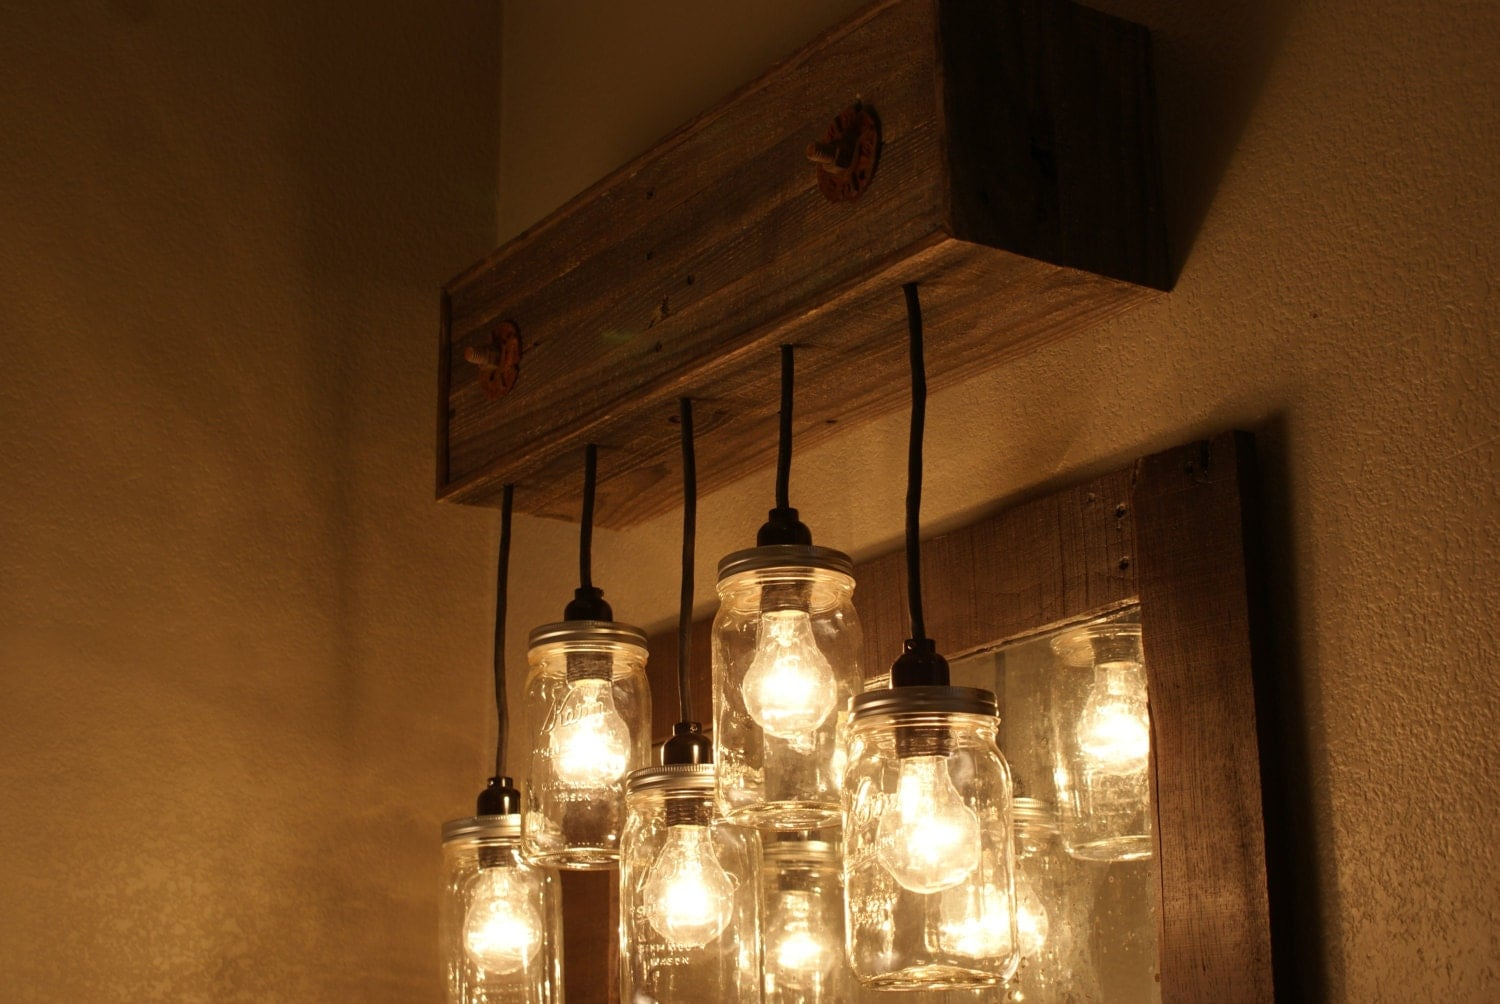 Mason Jar Chandelier Wall Mount - Mason Jar lighting - Upcycled Wood - Mason jar pendant fixture - Bornagainwoodworks